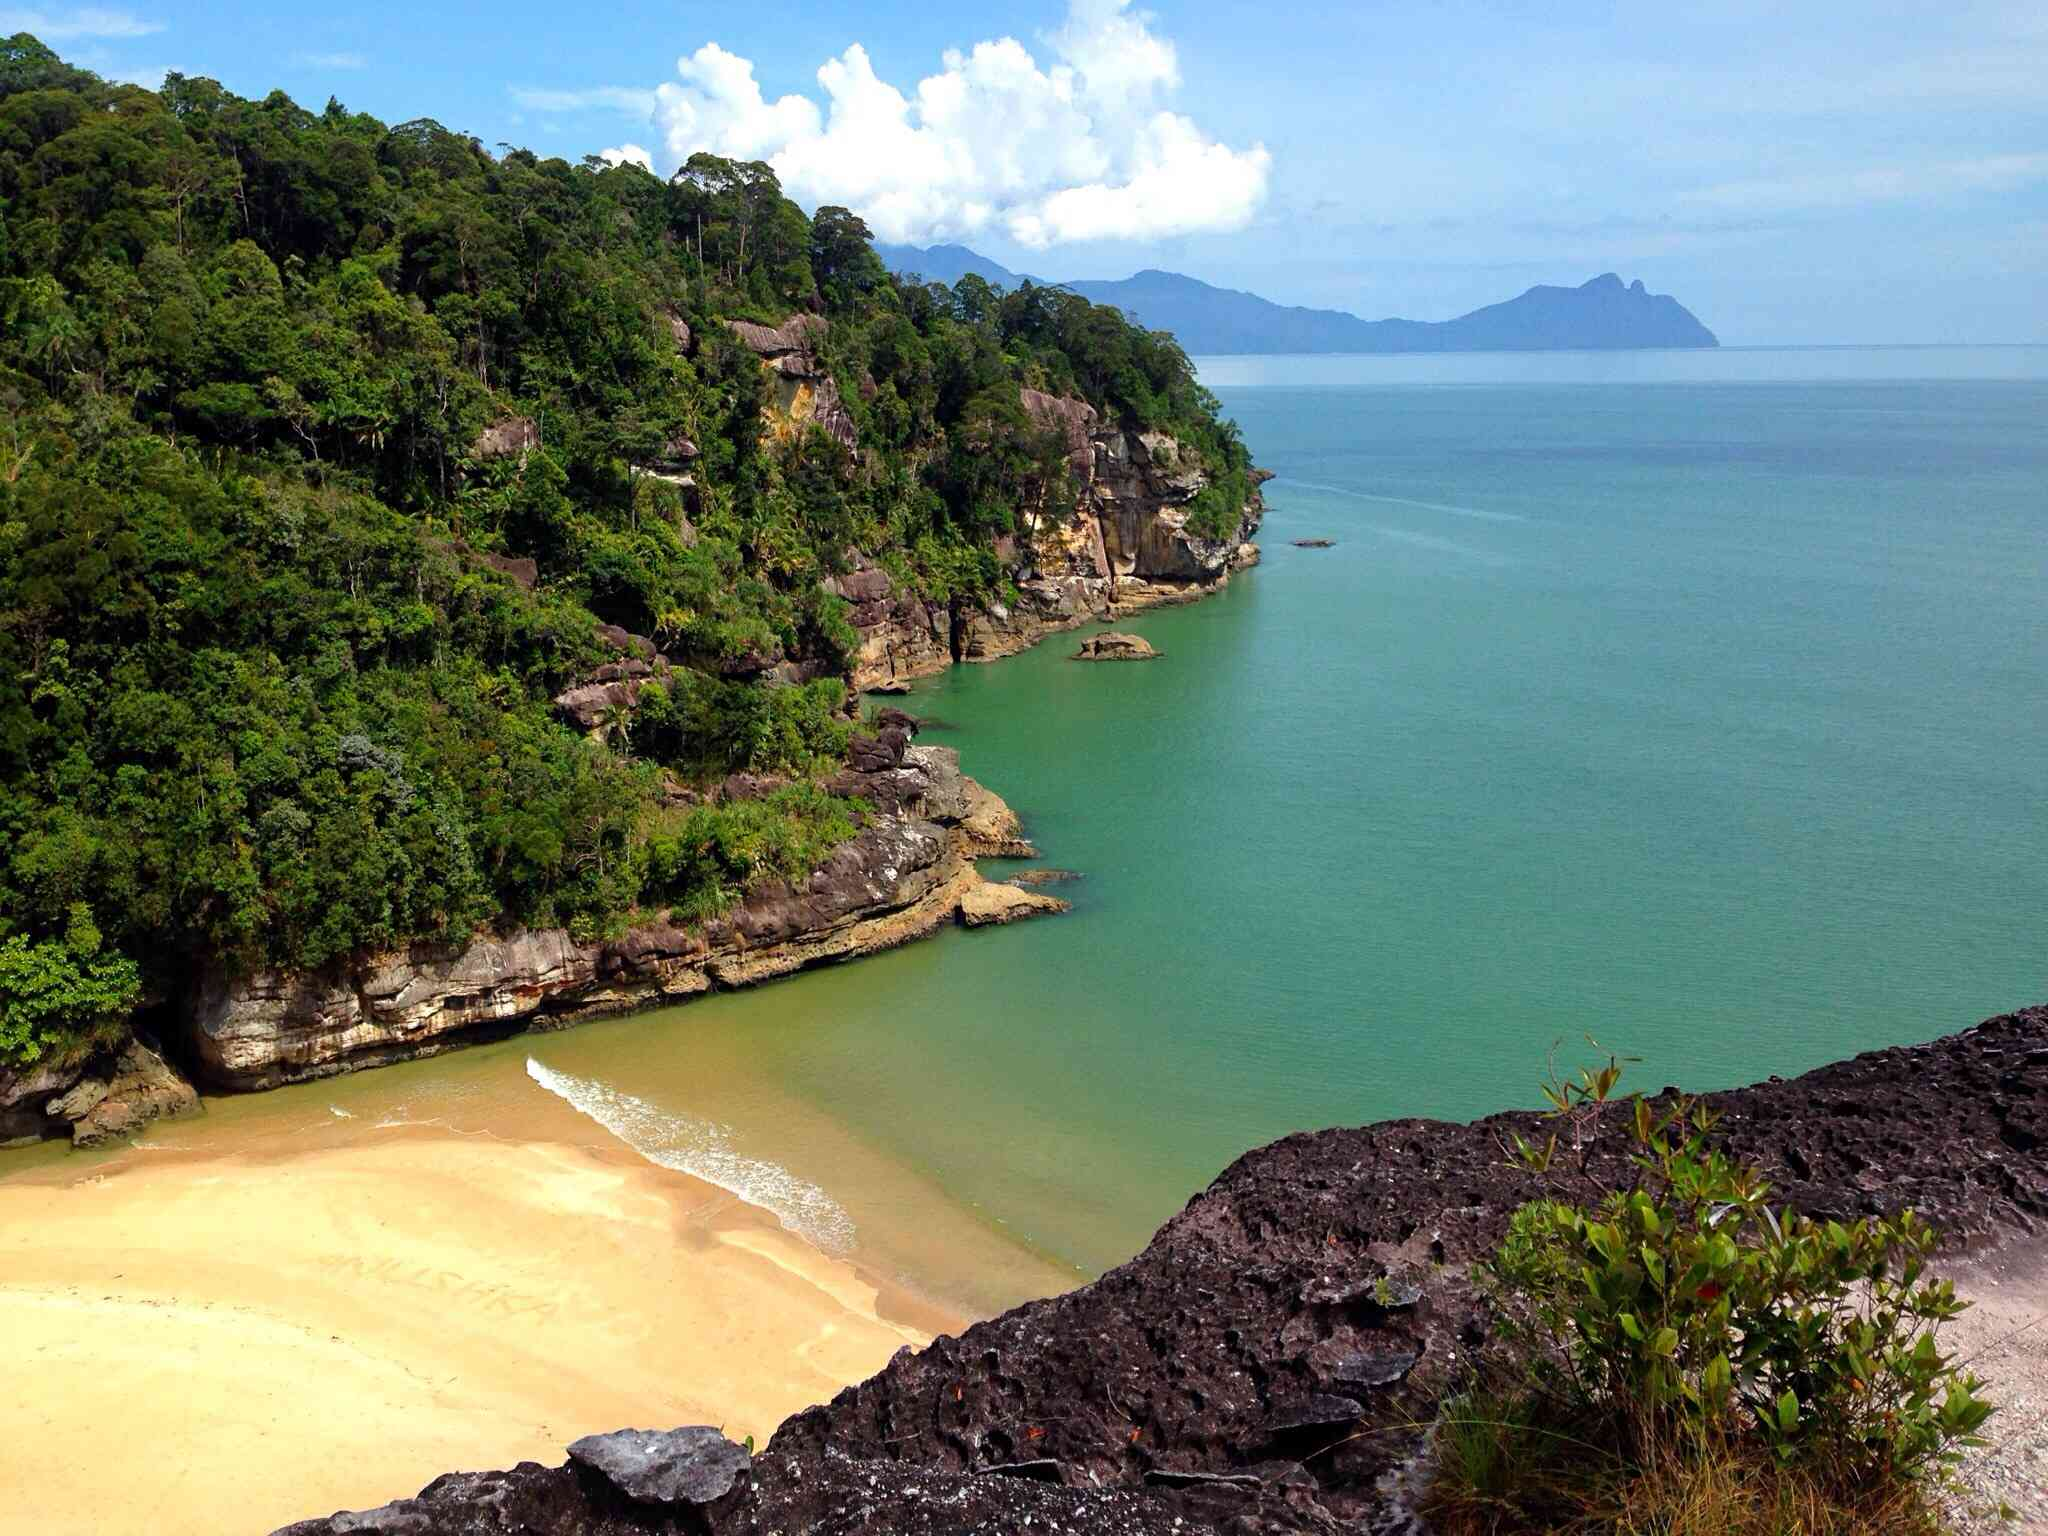 A beach at Bako National Park in Borneo